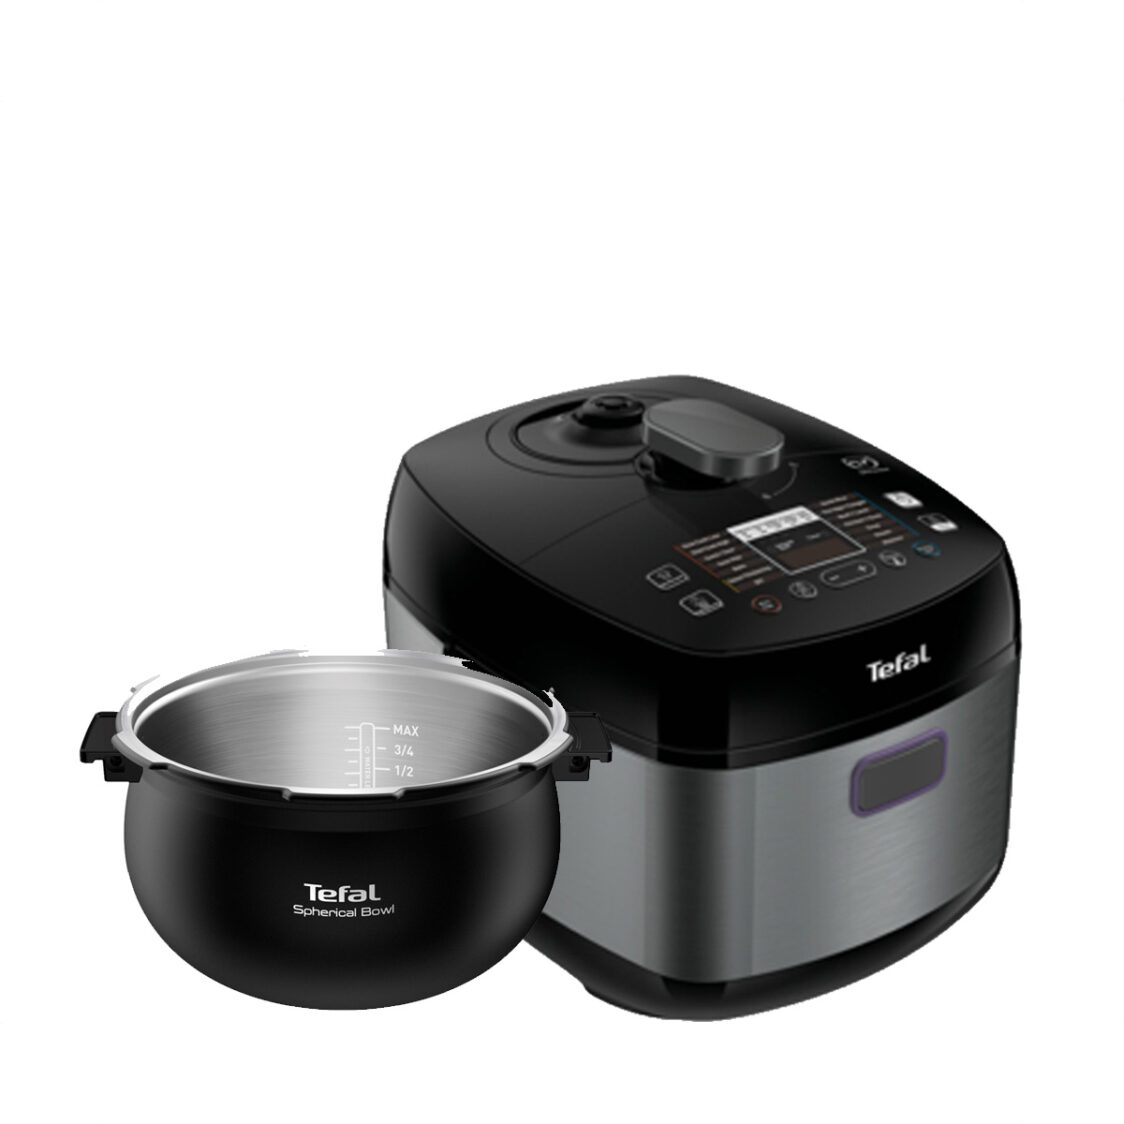 Tefal Home Chef Smart Pro Multicooker 5L  Additional Inner Pot CY625  XA623